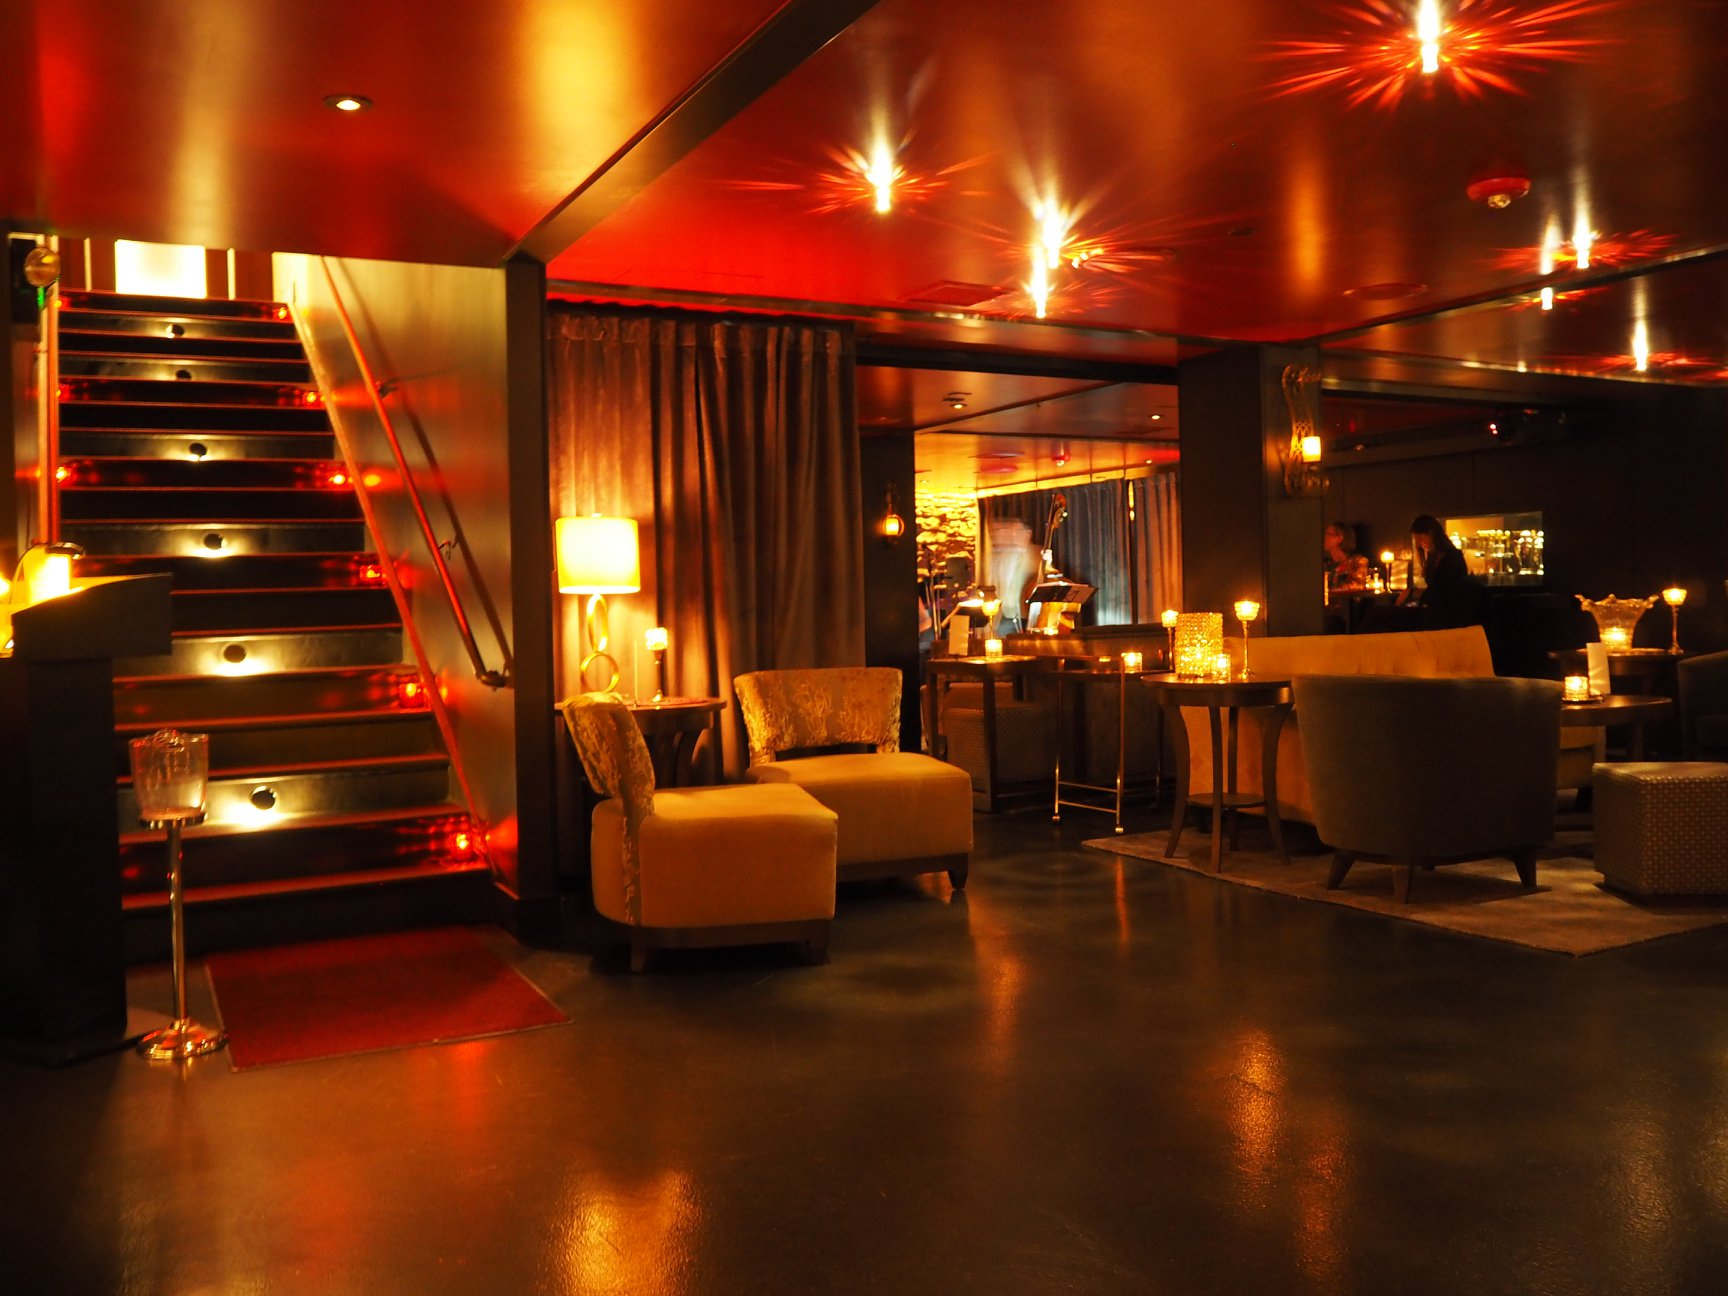 303 Magazine, 303 Music, The Crimson Room, Romantic Venue